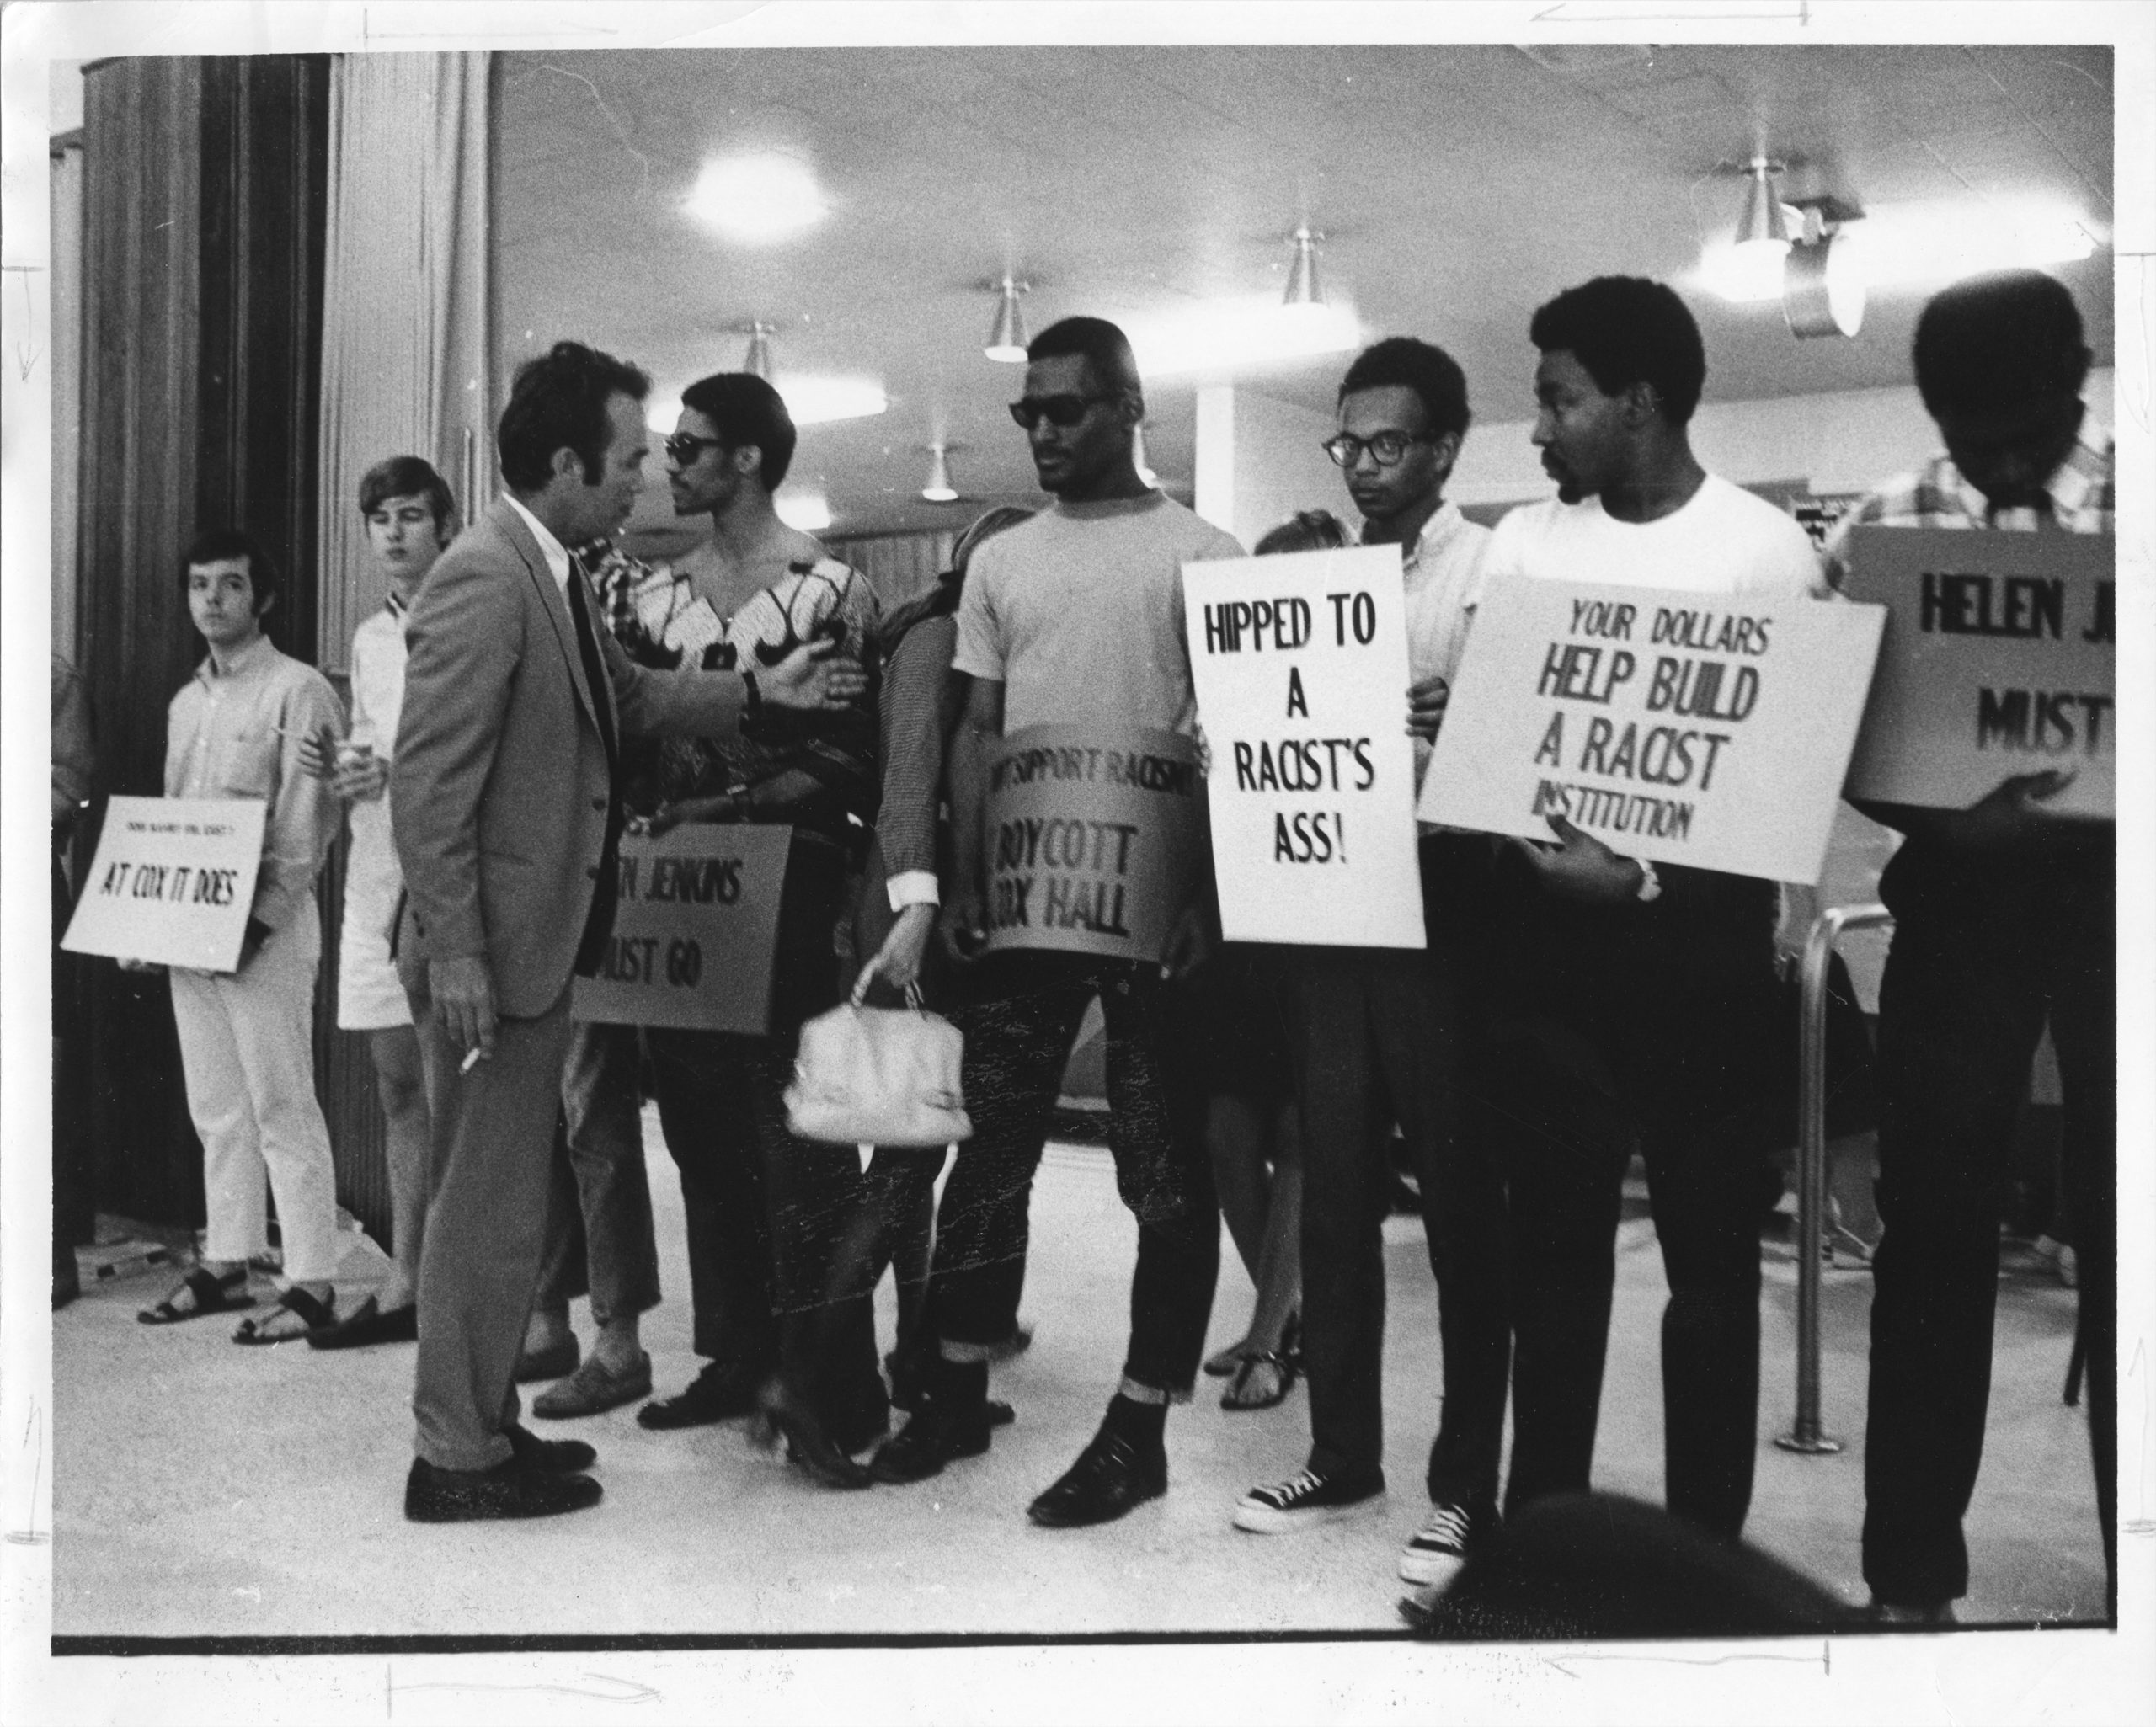 """Photo of student protestors holding signs, including """"your dollars helped build a racist institution"""""""